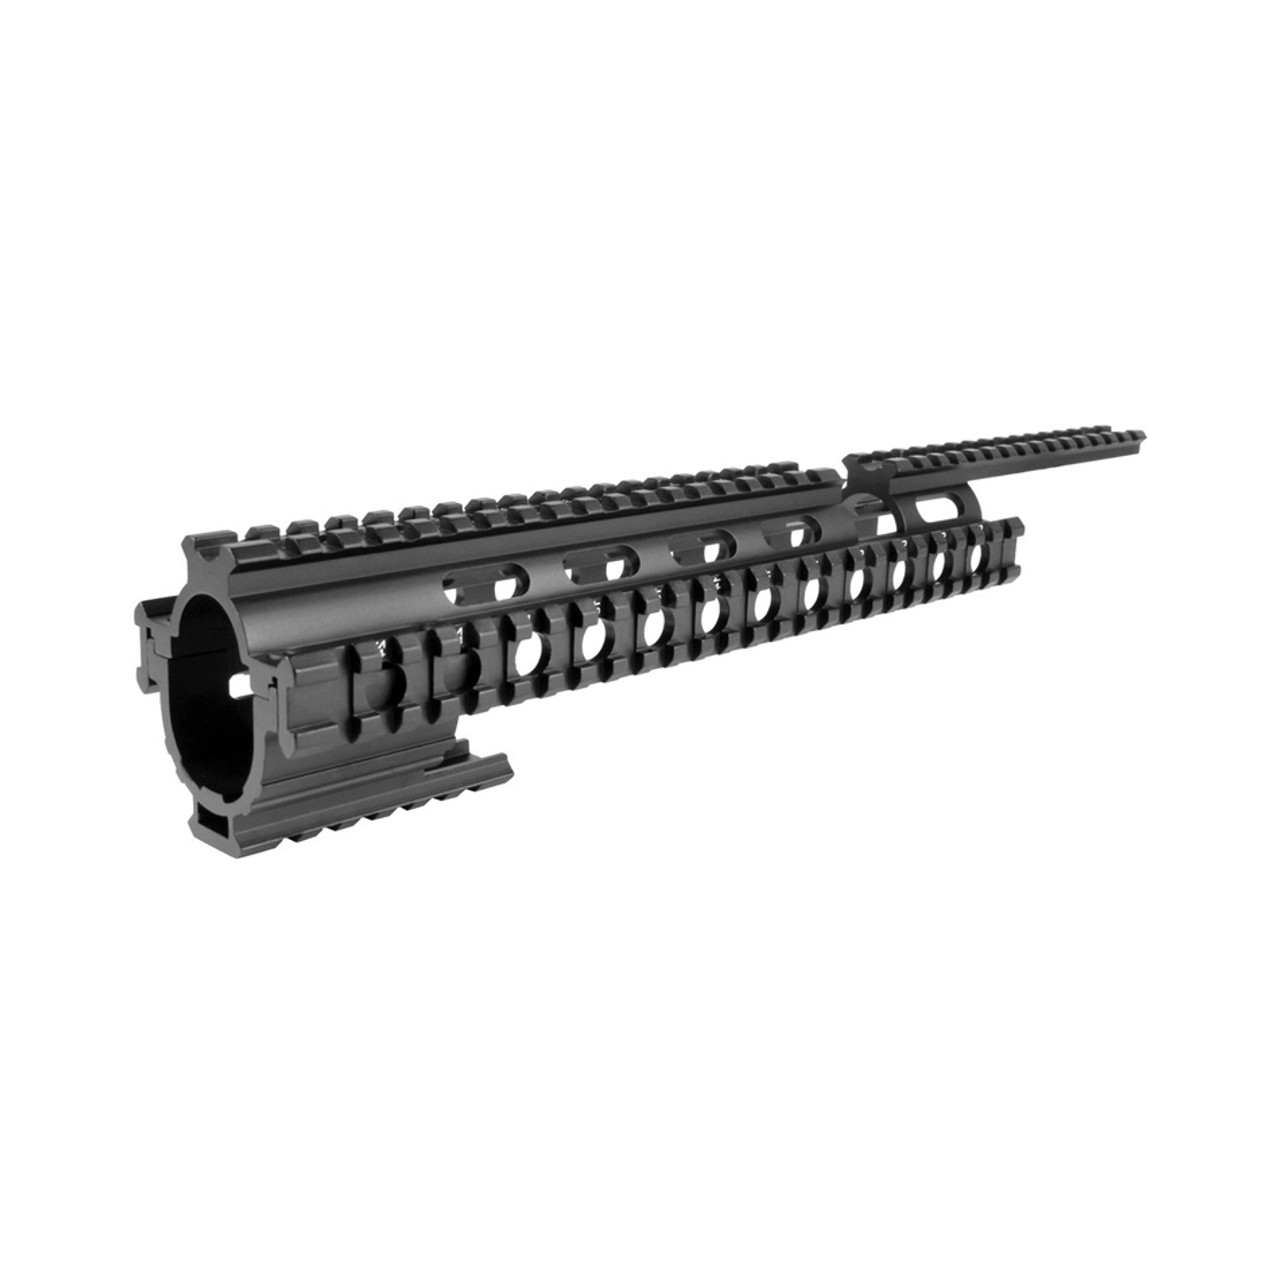 RUGER 10/22 TACTICAL QUAD RAIL